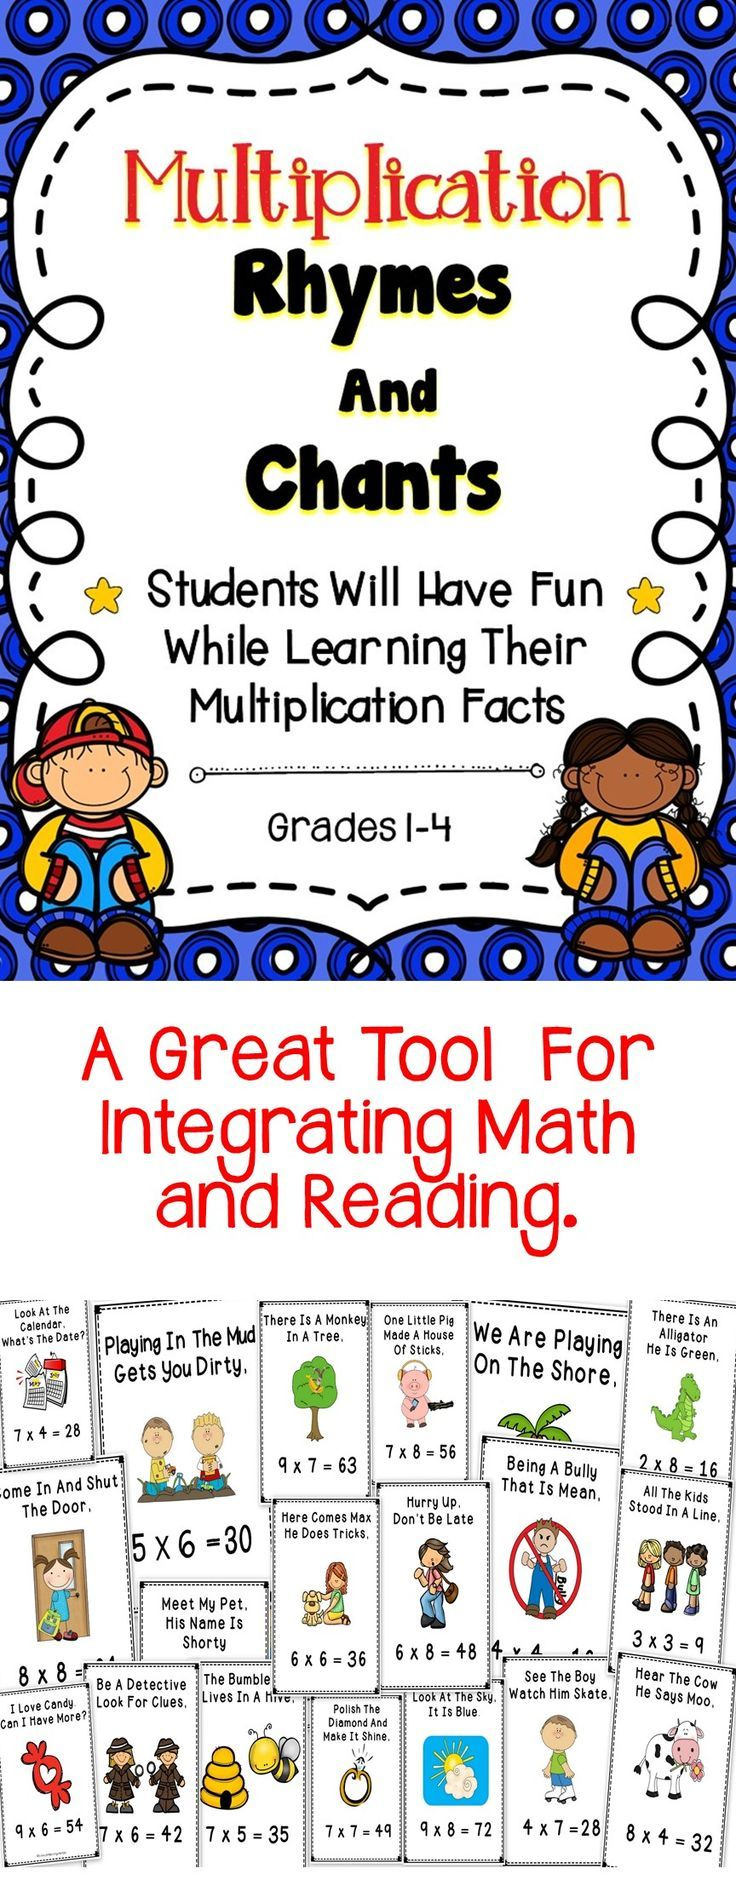 Multiplication - This Is A Bundle Of Multiplication Rhymes